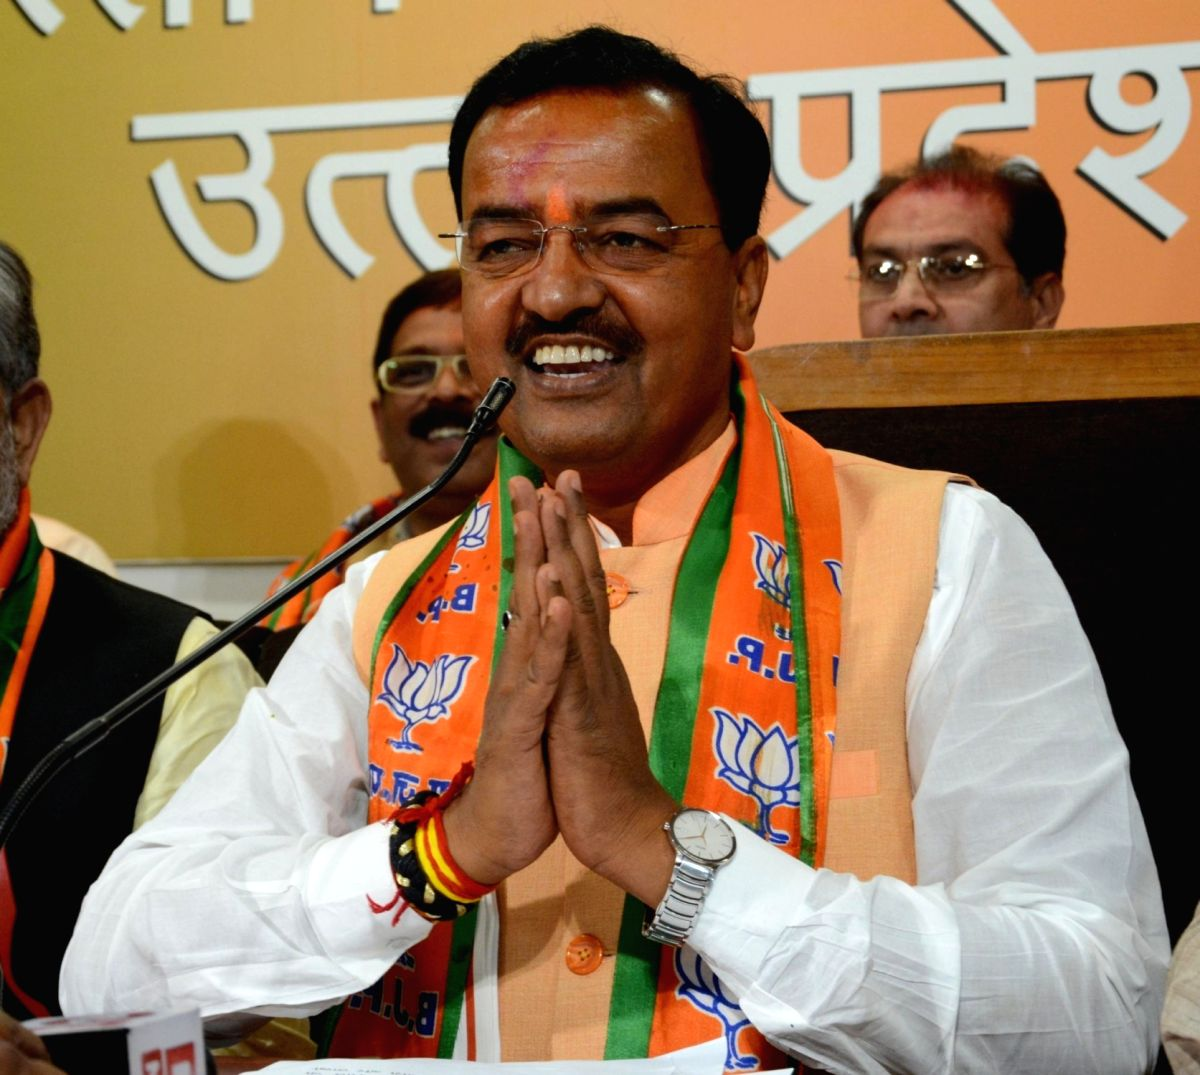 BJP UP chief Keshav Prasad Maurya addresses a press conference regarding party's performance in the assembly elections in Lucknow on March 11, 2017.